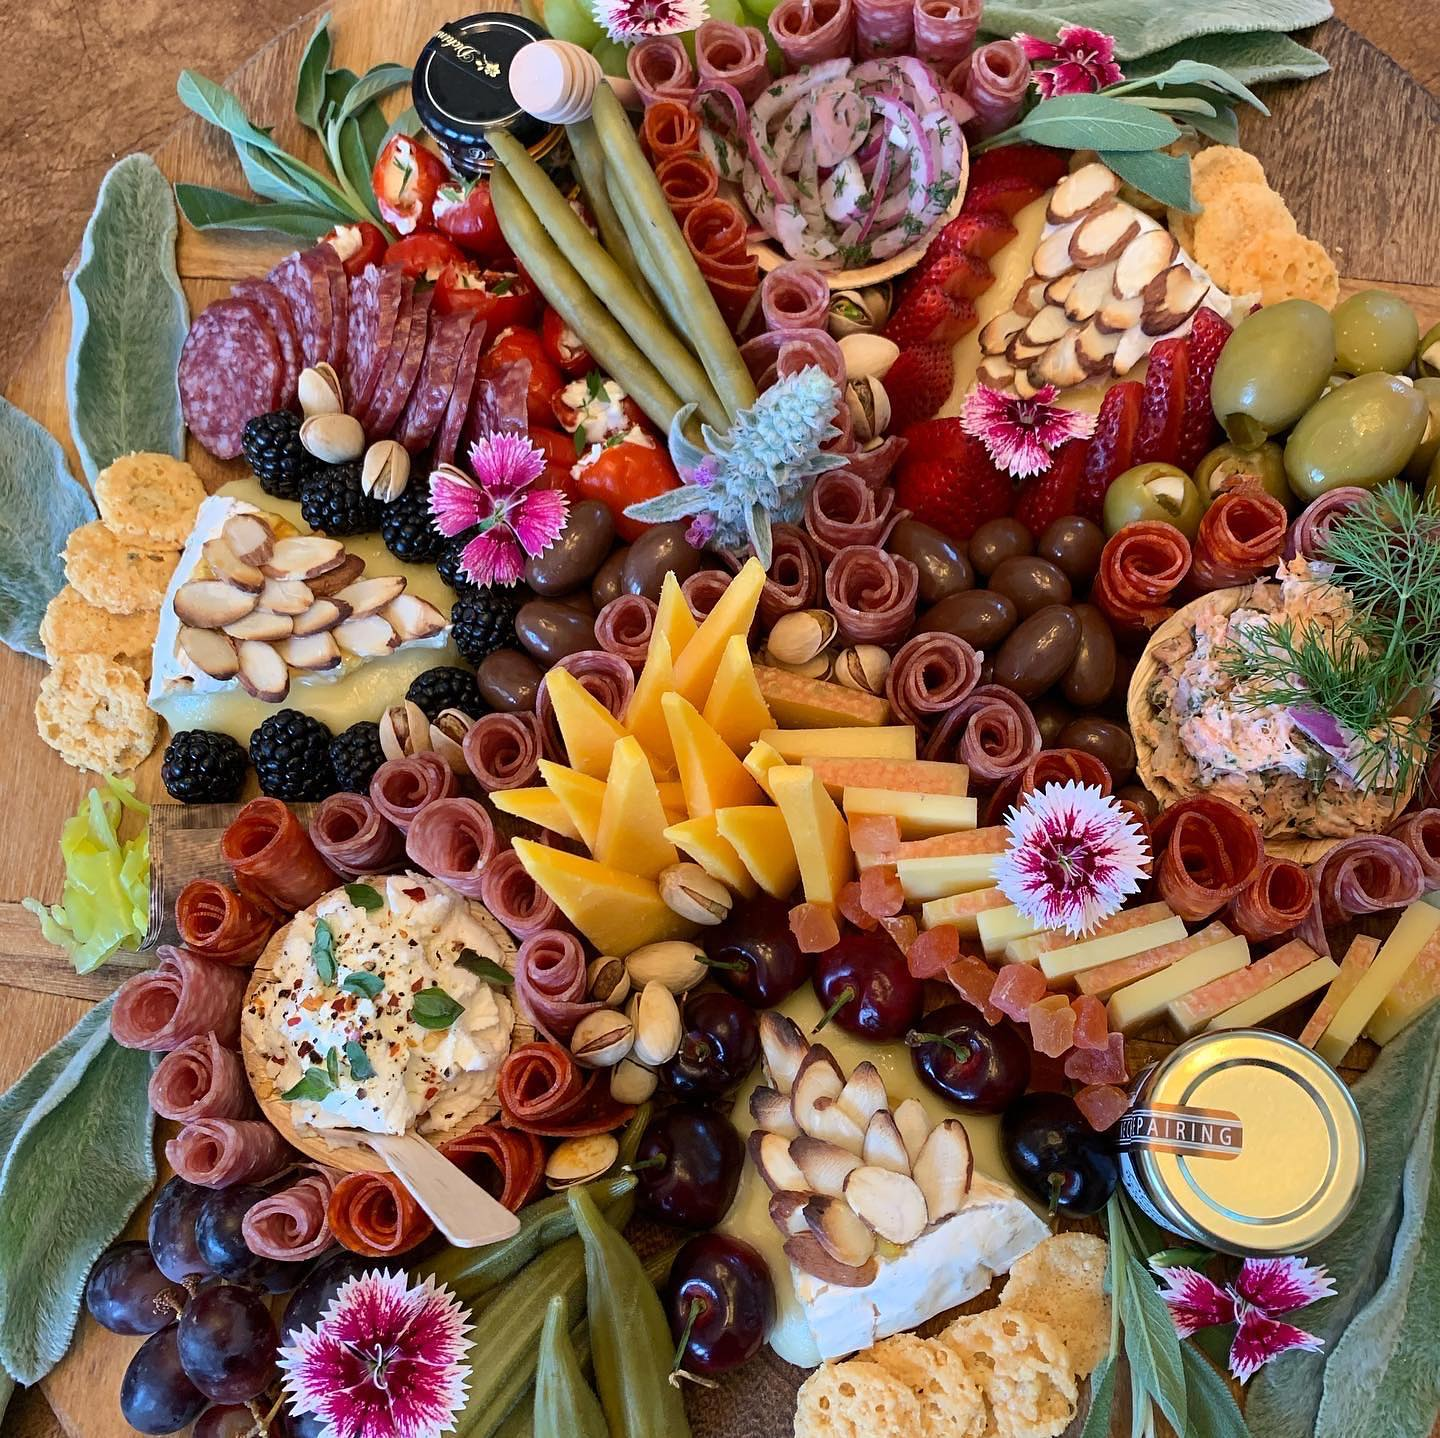 charcuterie board with assorted meats, cheeses, fruits, vegetables, crackers, jams and nuts